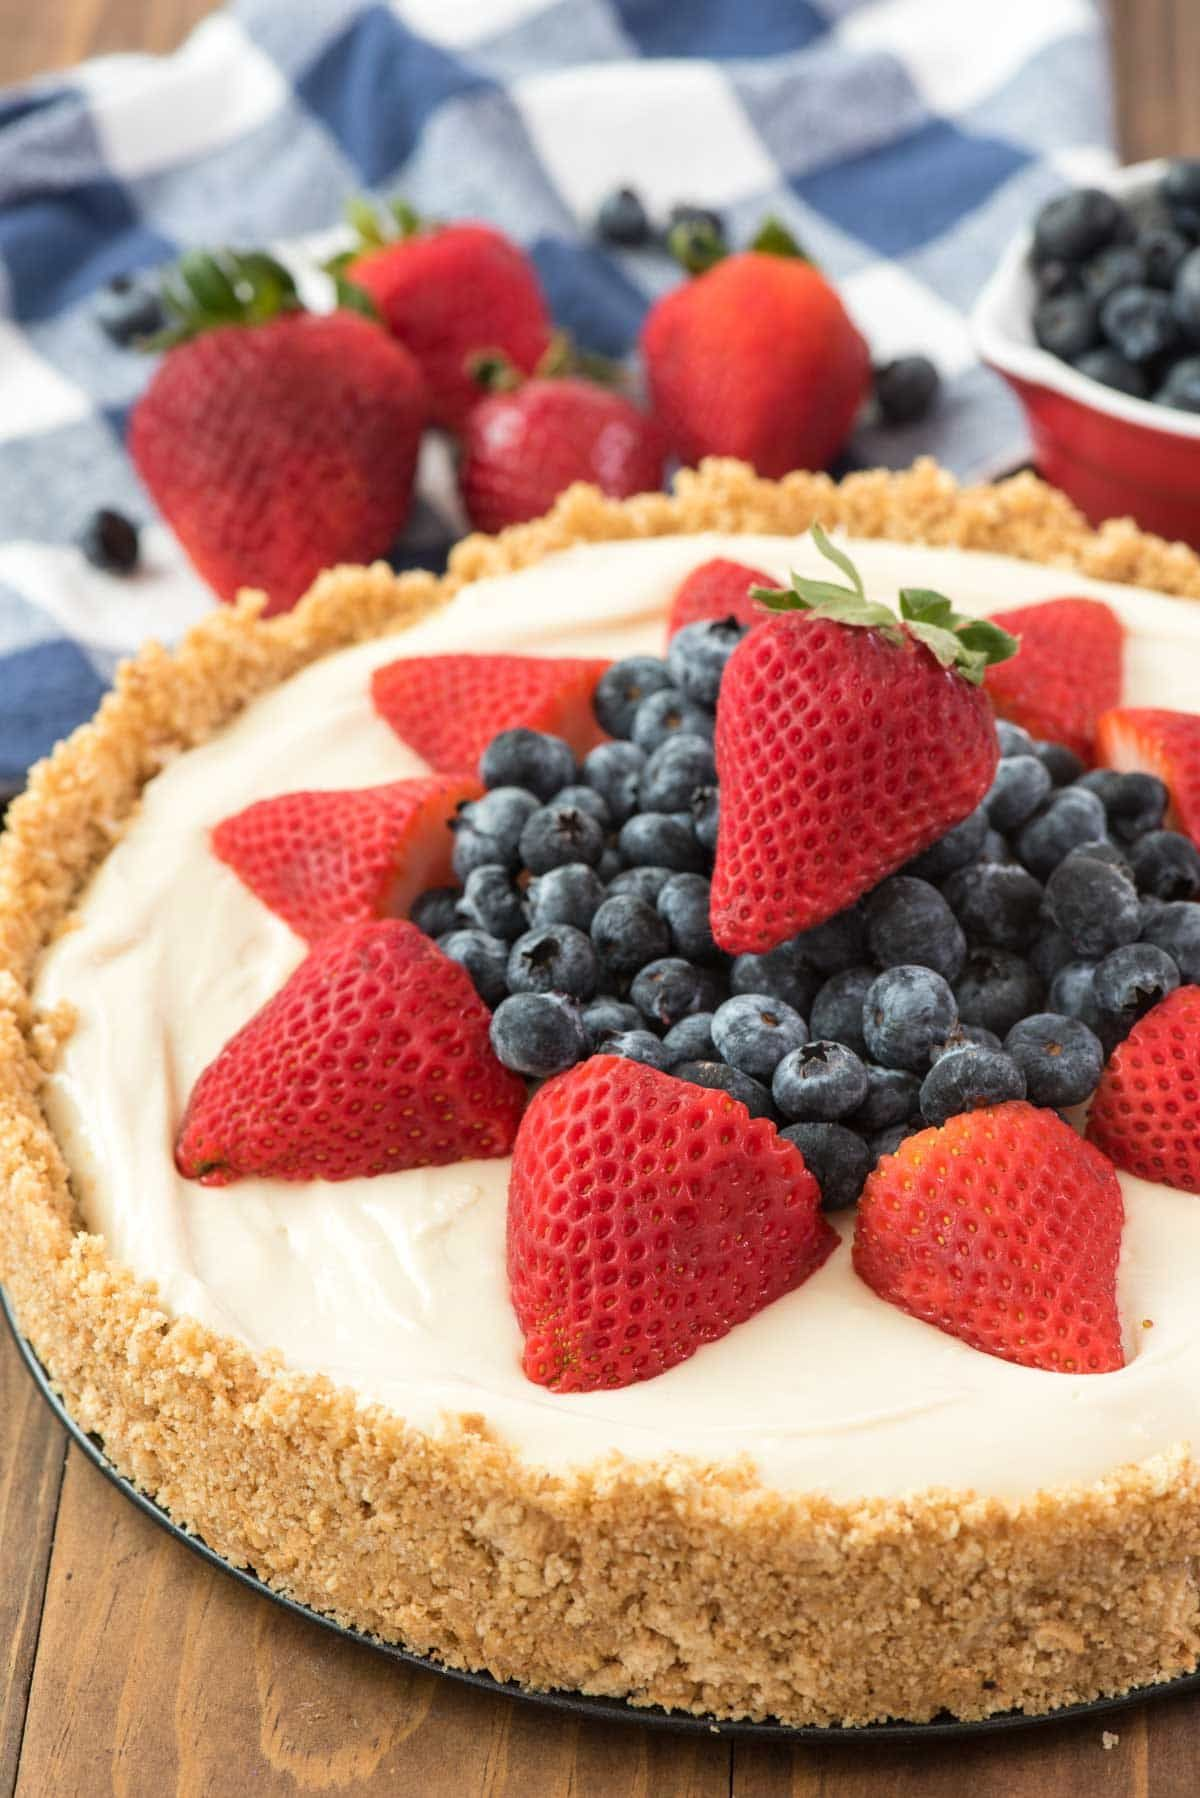 The Best No Bake Cheesecake Recipe Crazy For Crust Recipe Best No Bake Cheesecake Easy No Bake Cheesecake Baked Cheesecake Recipe